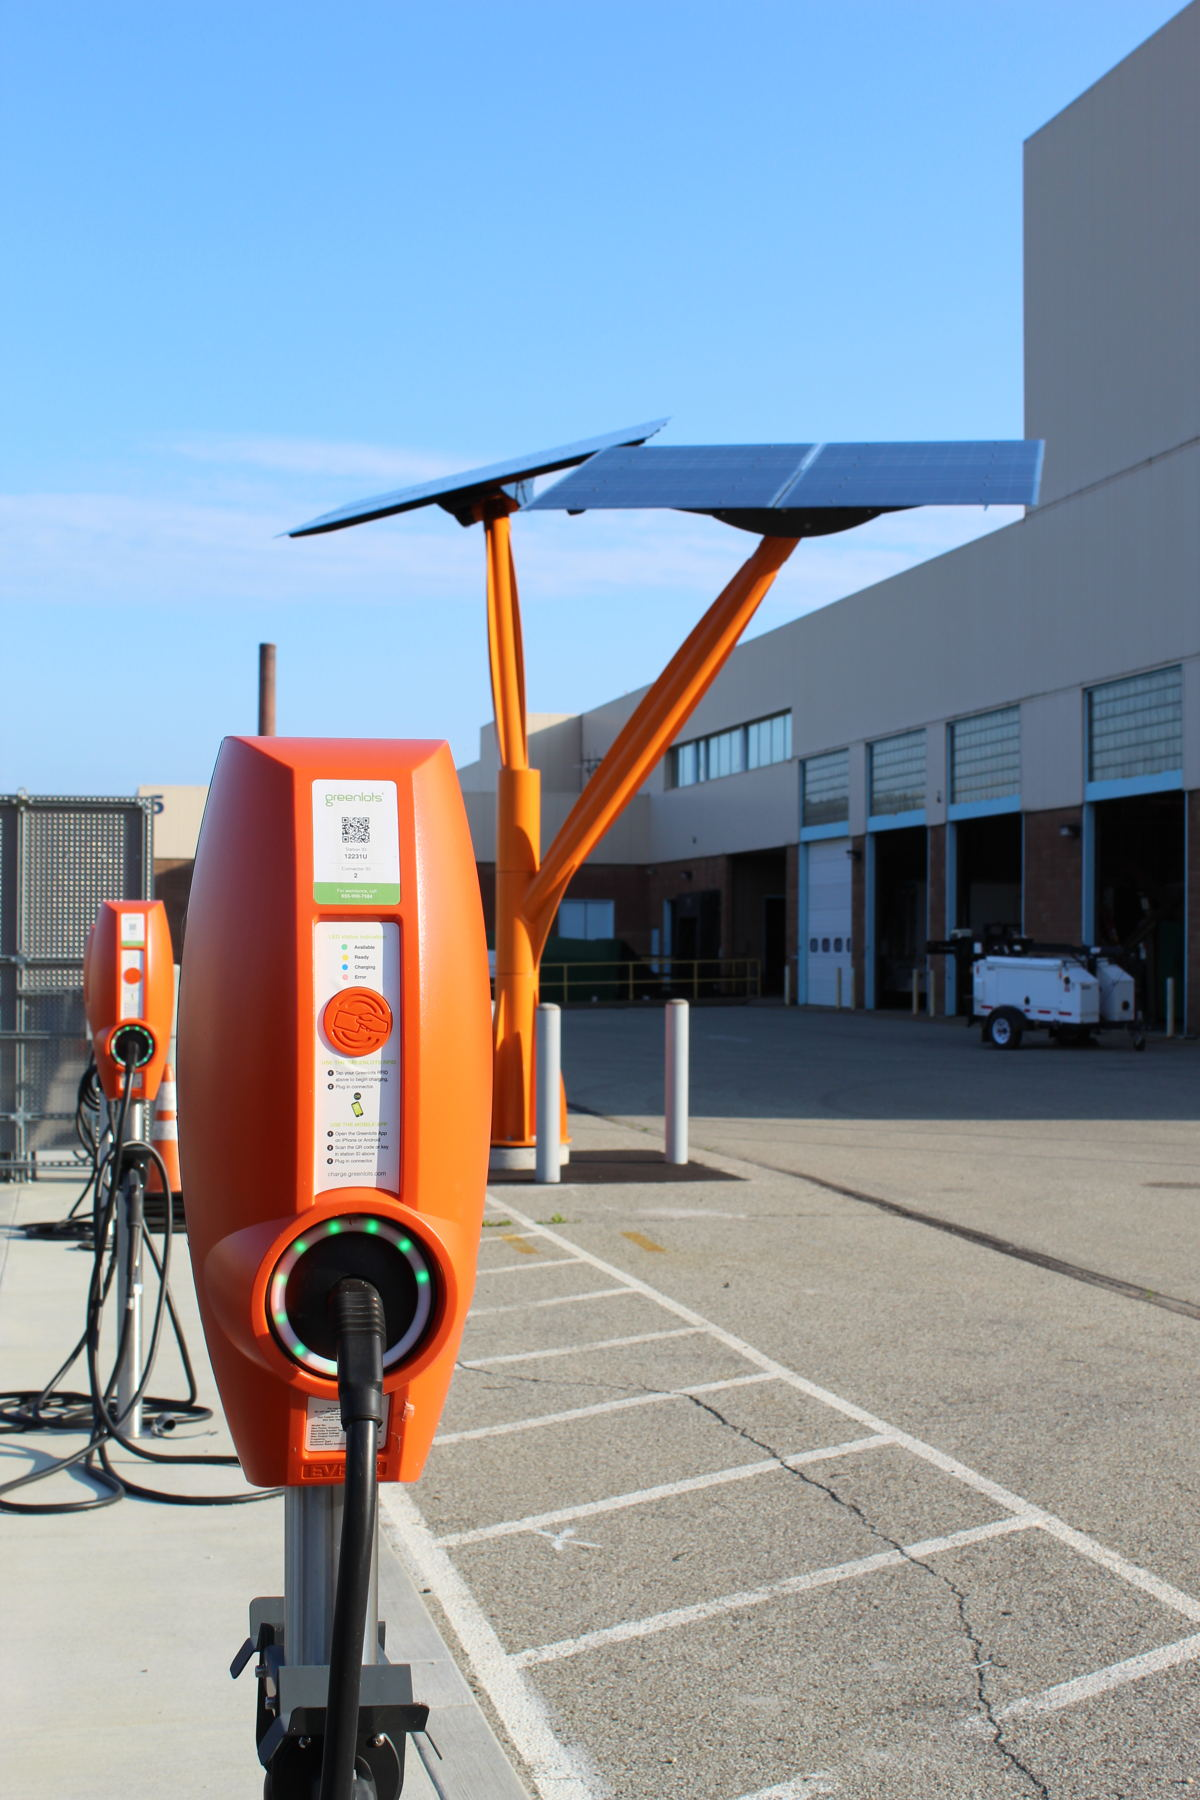 The campus' 20 EV chargers, which will be powered by the panels and tree, accommodate the company's growing electric fleet and employees who drive EVs.